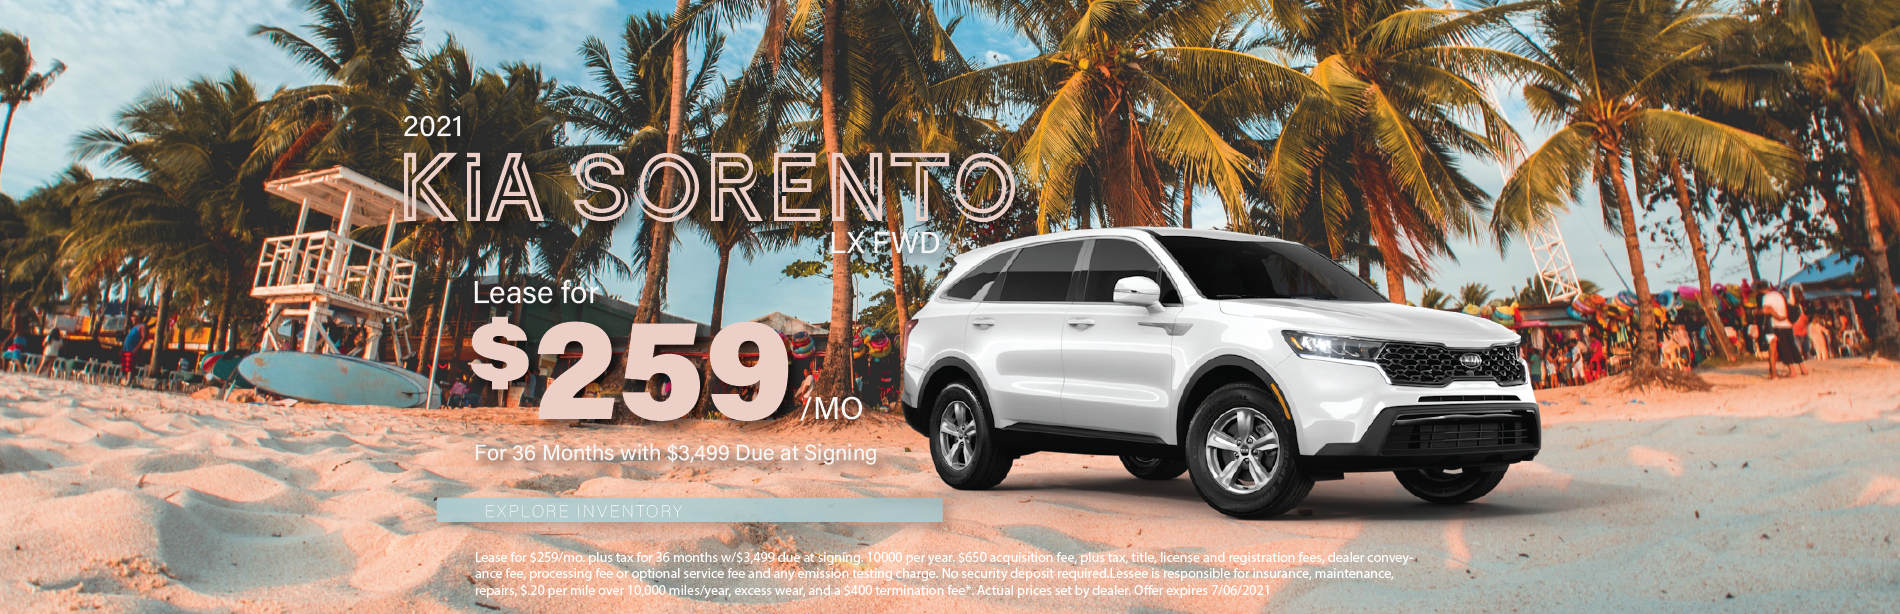 Lafontaine Kia Sorento updated – May